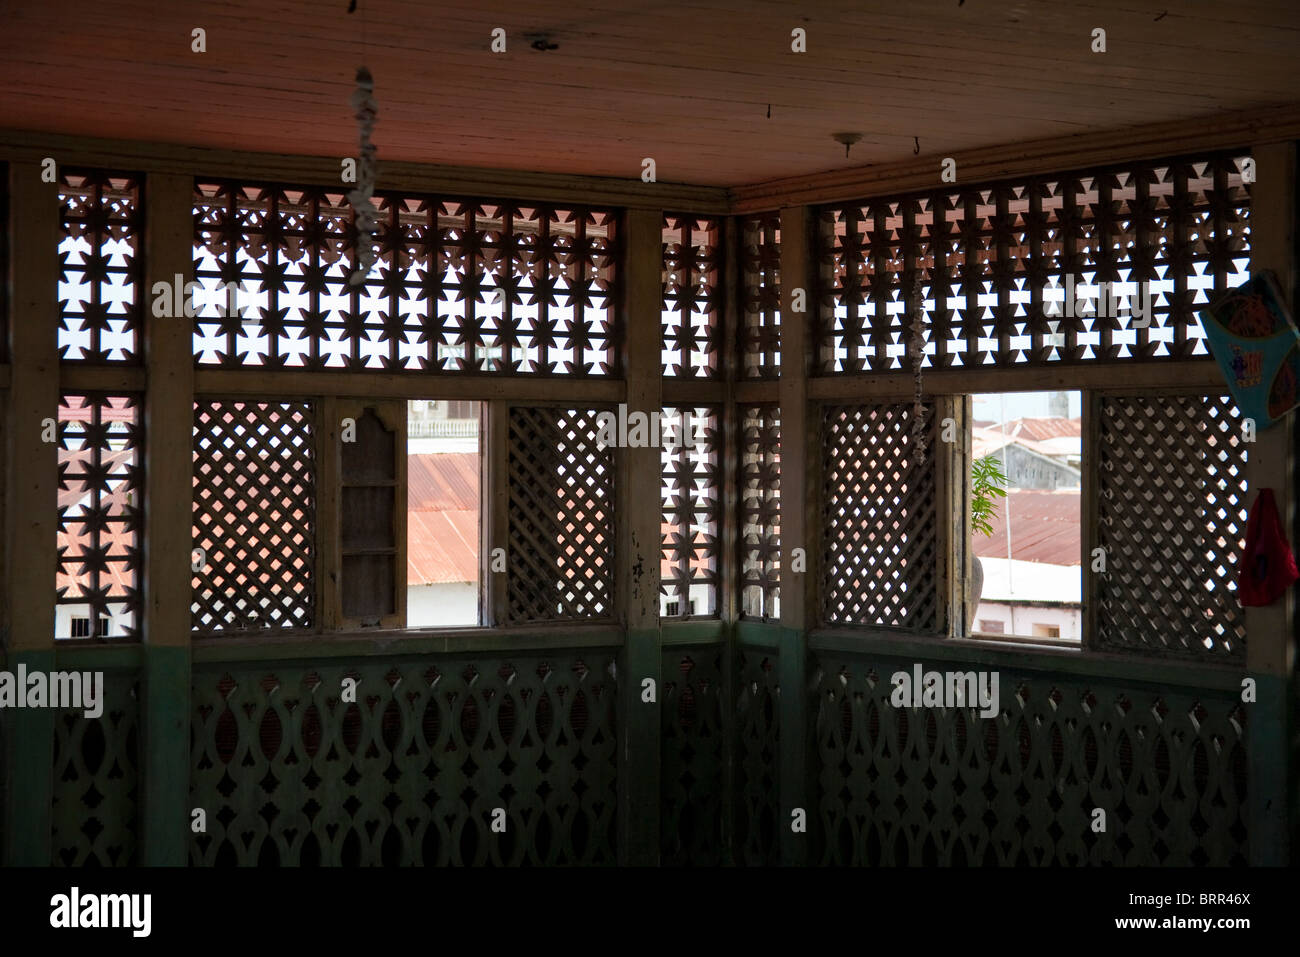 Mnemba stock photos images alamy